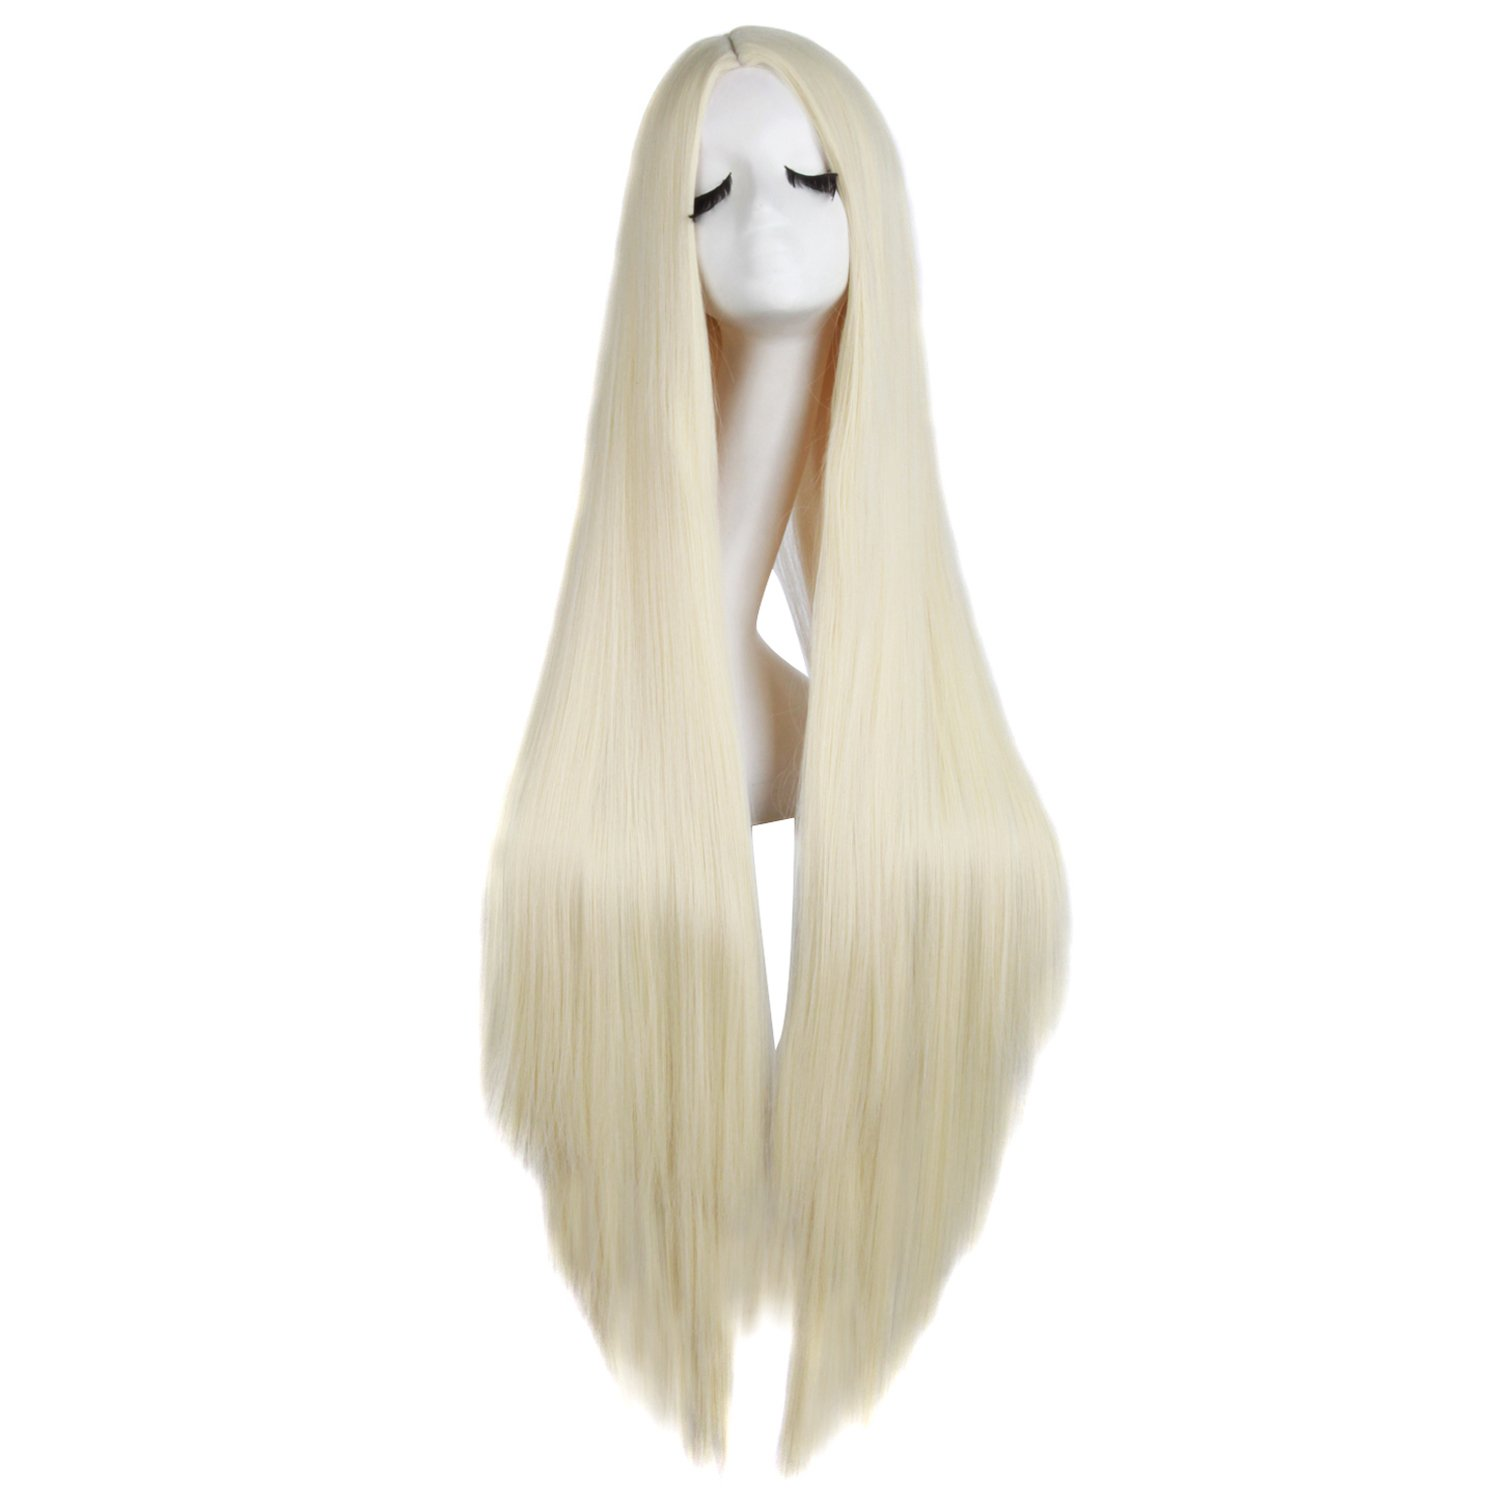 "MapofBeauty 40""/100cm Natural Soft Straight Long Cosplay Wig (Light Blonde)"